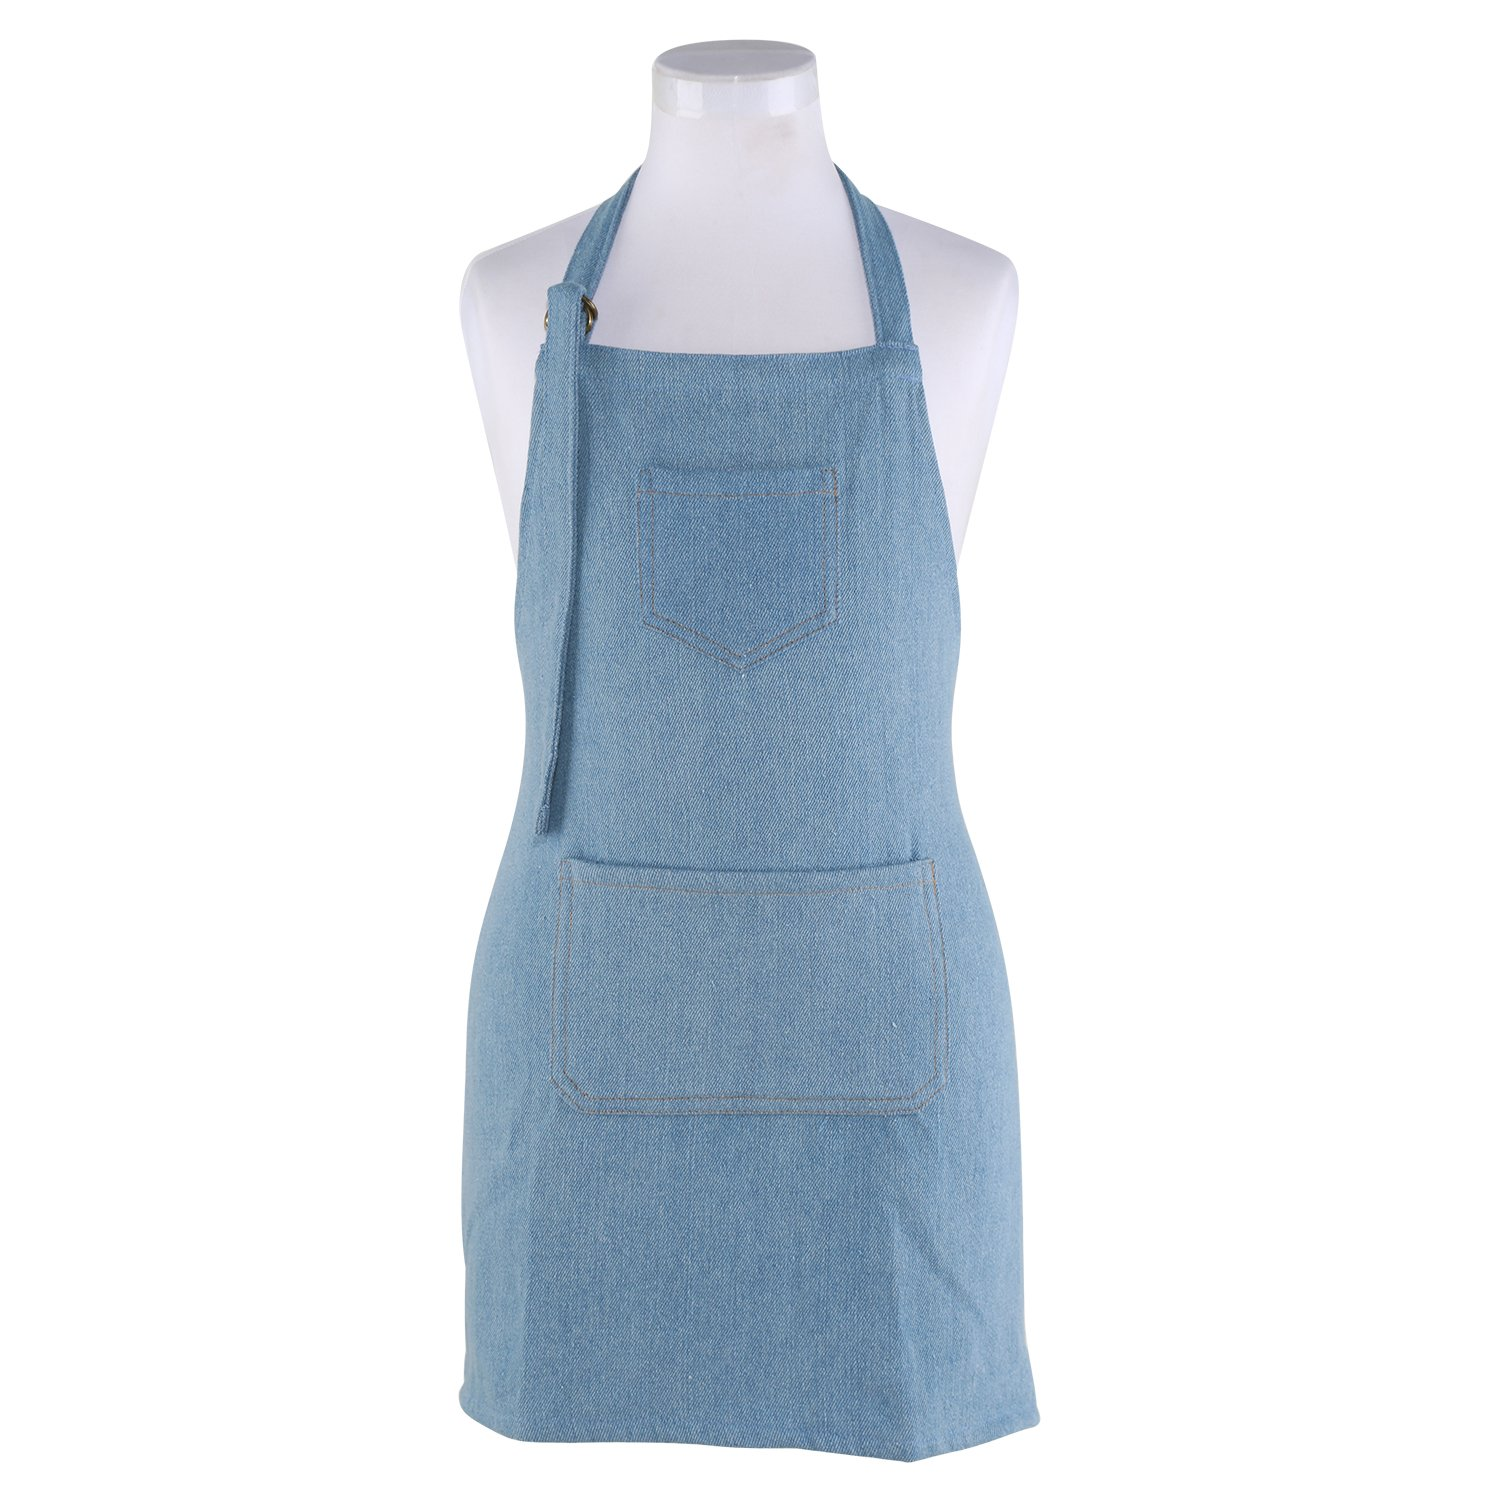 Neoviva Jeans Apron with Pockets for Kid Boys, Solid Skyway Blue